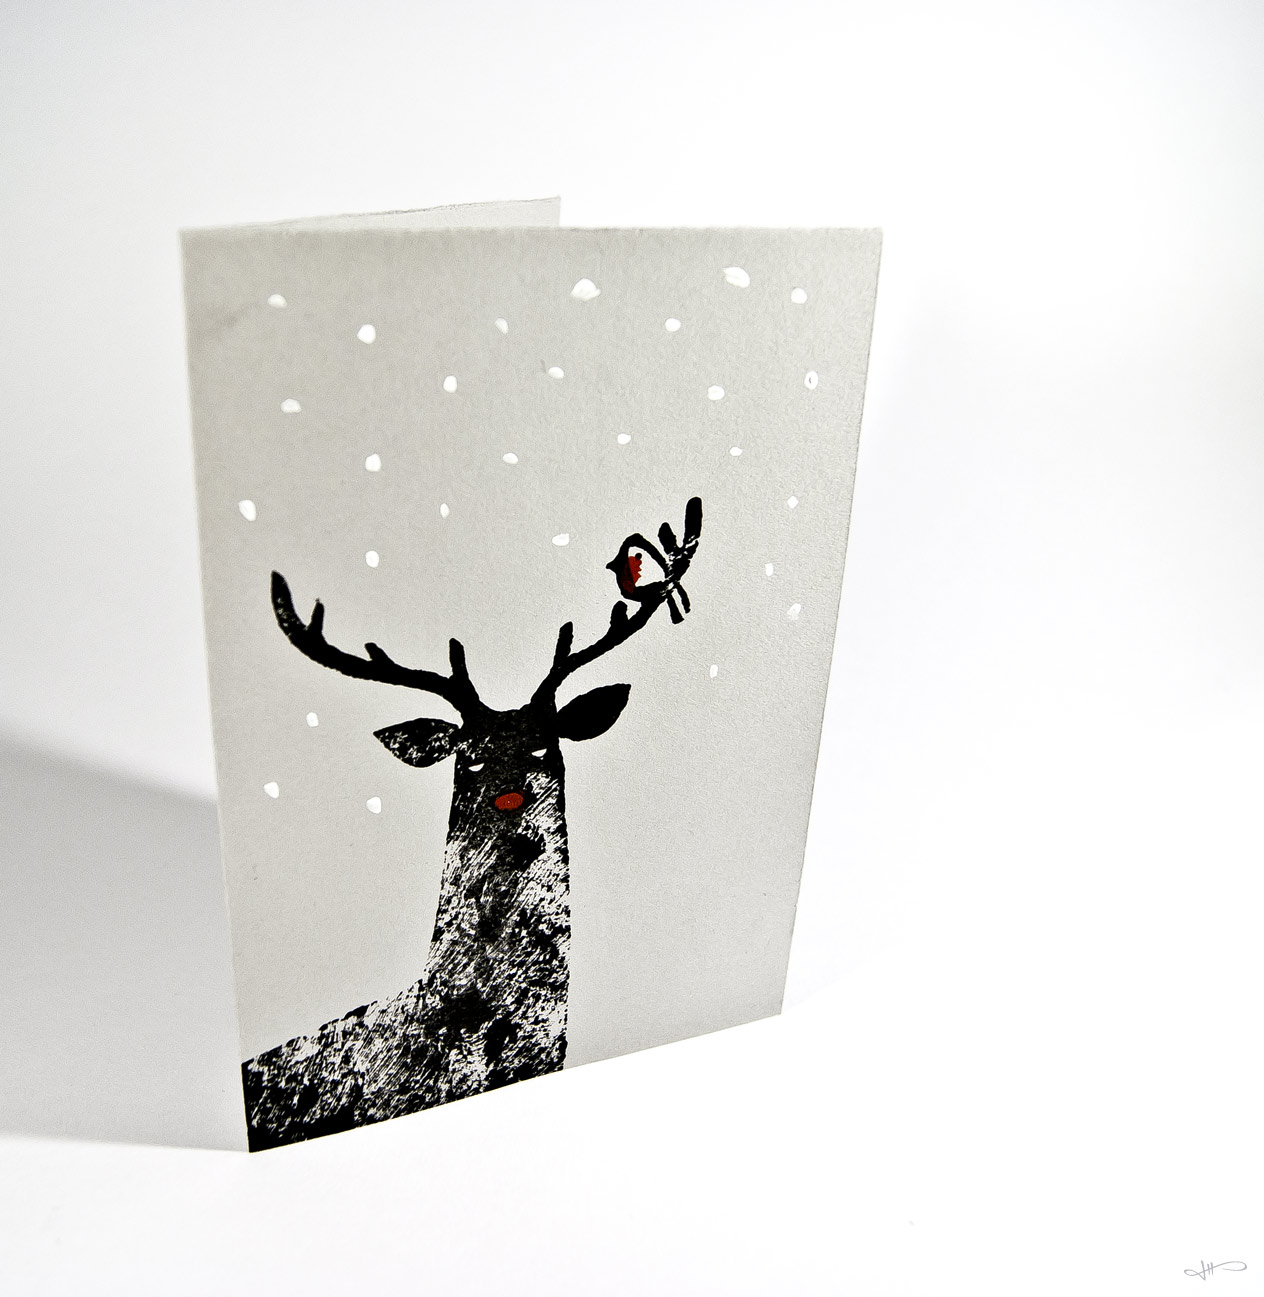 Photograph of a linocut reindeer printed in black, with a painted red nose, robin and white snow on grey paper, on a clean white background.